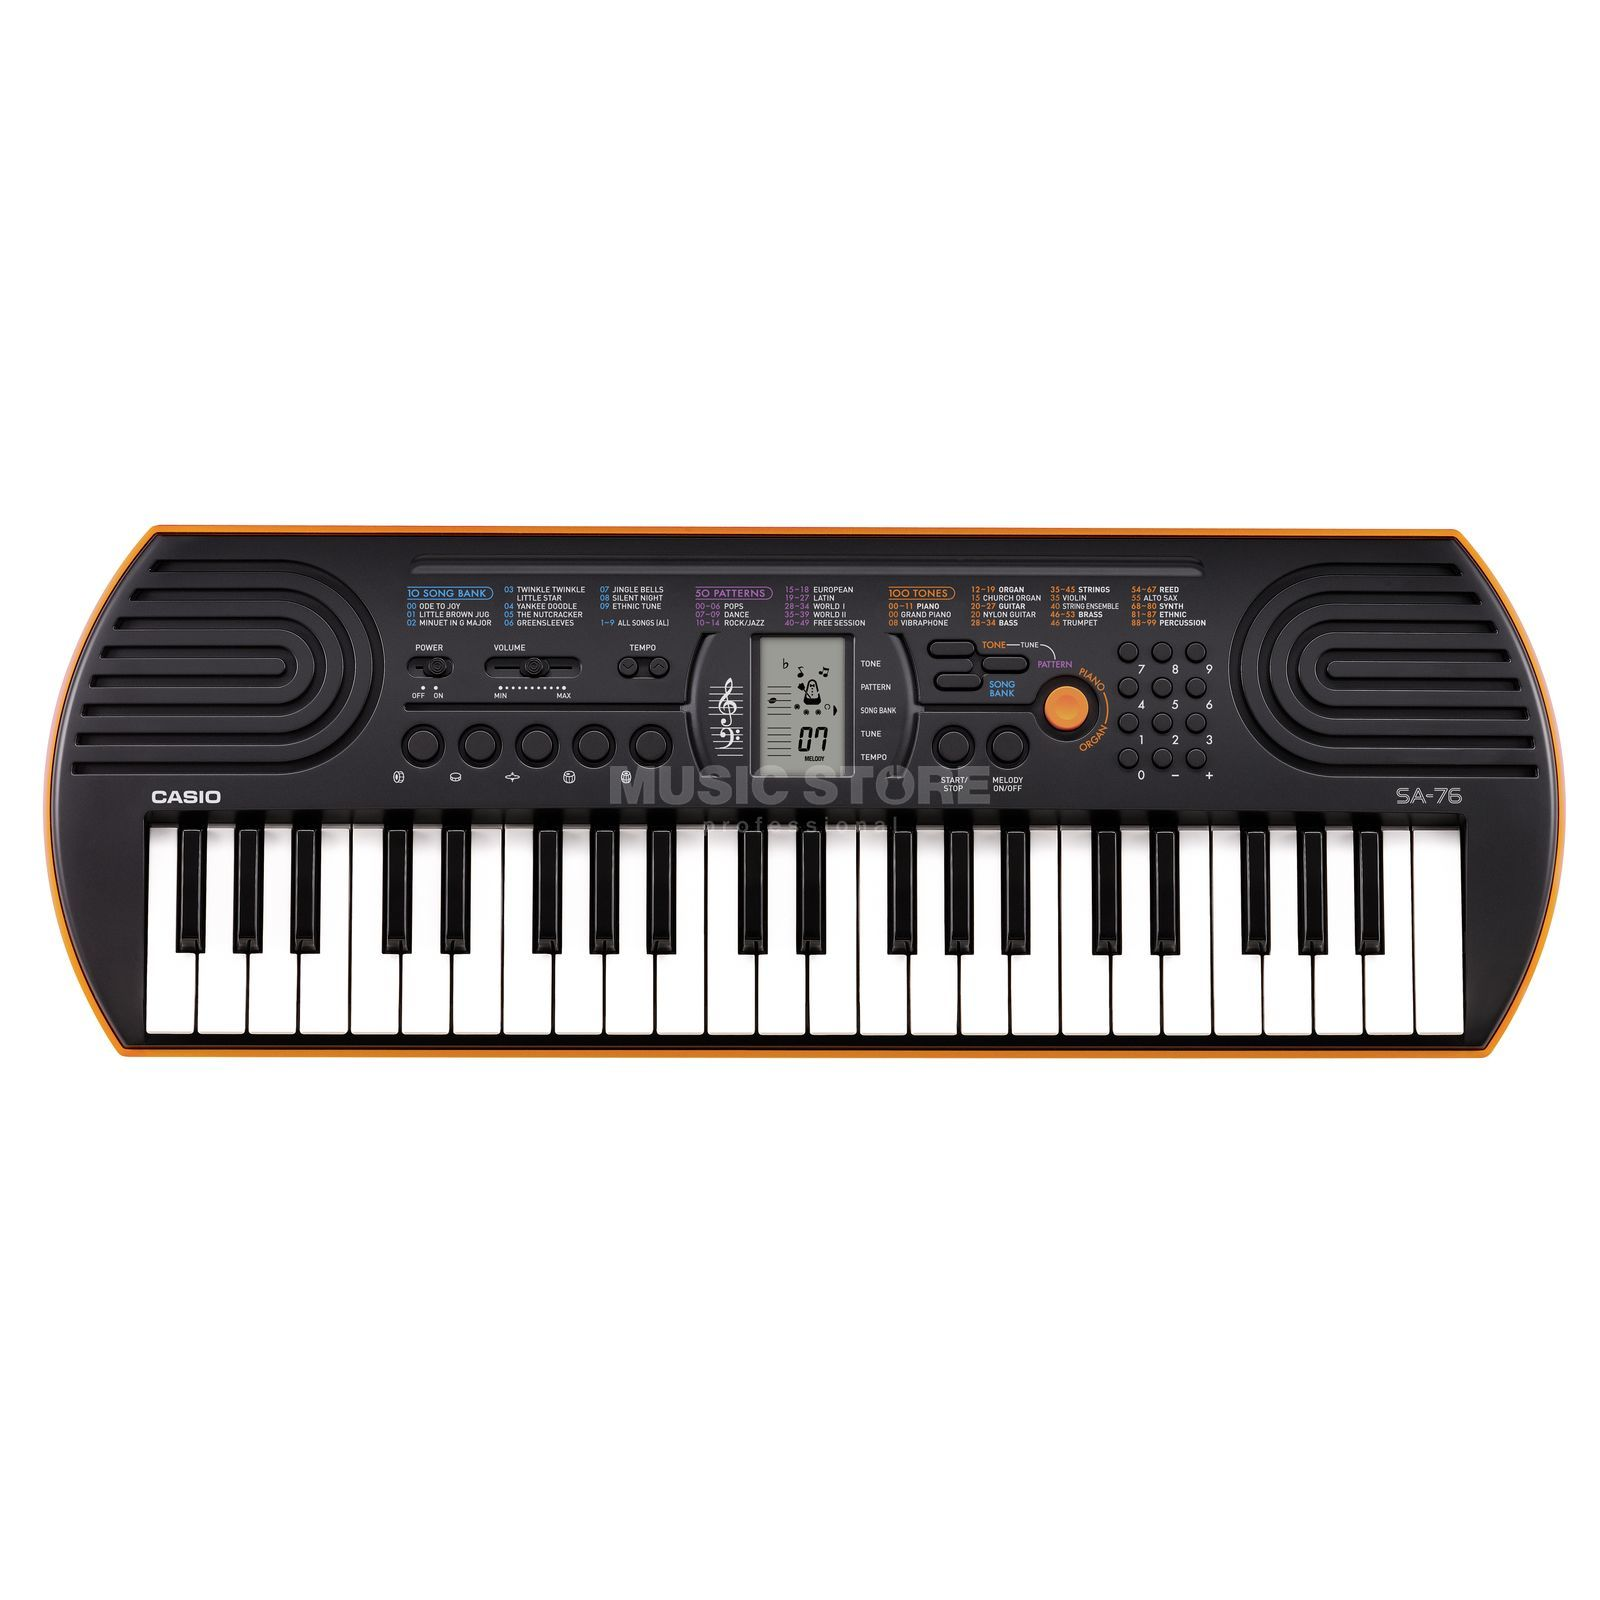 Casio SA 76 Keyboard, red-orange Produktbillede